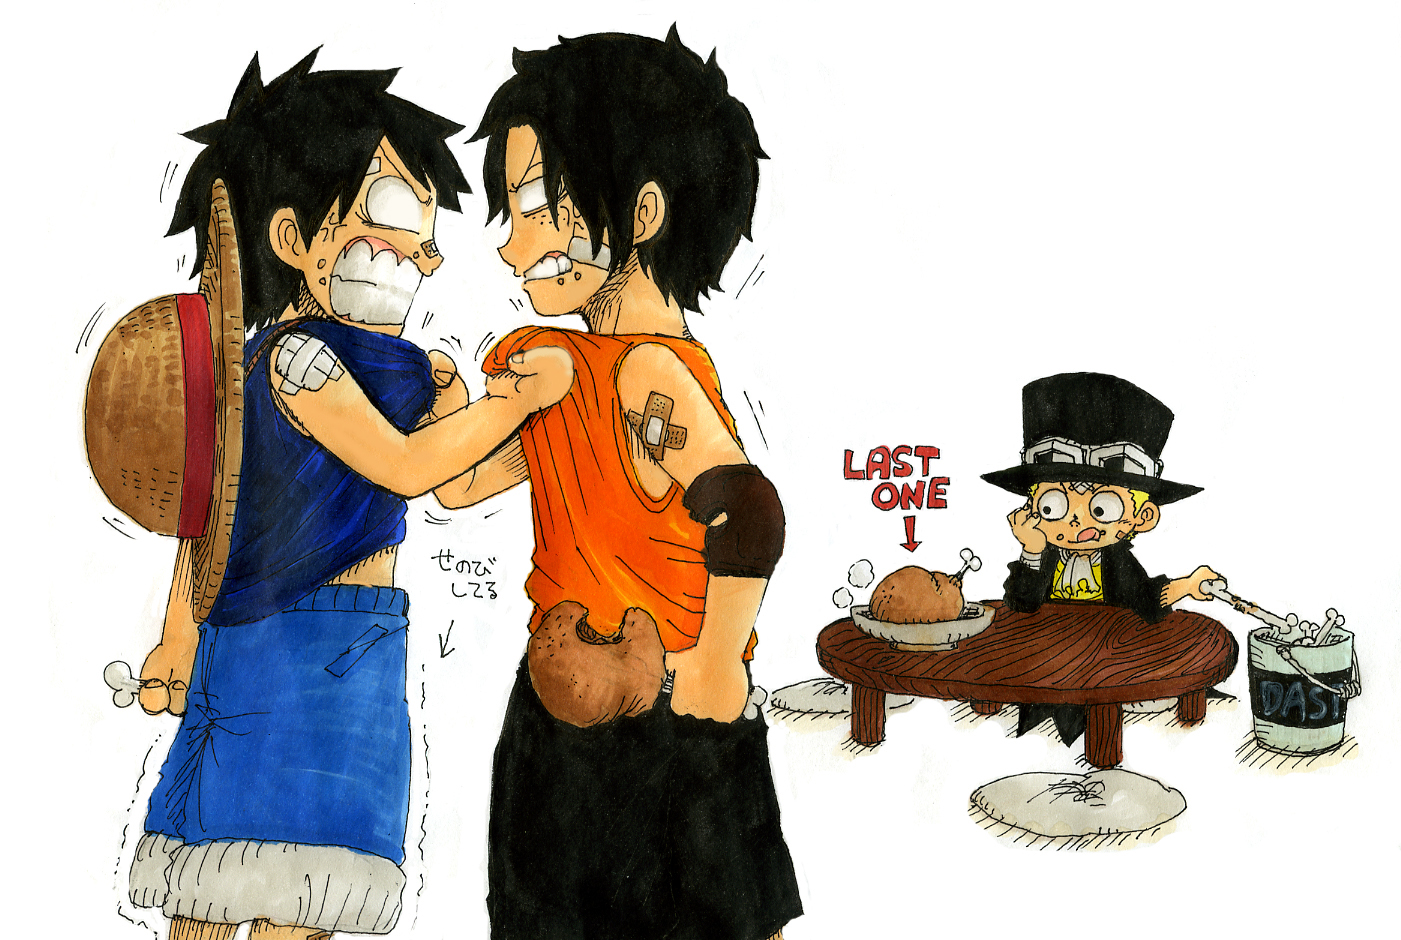 ace and luffy fighting wallpaper - photo #36